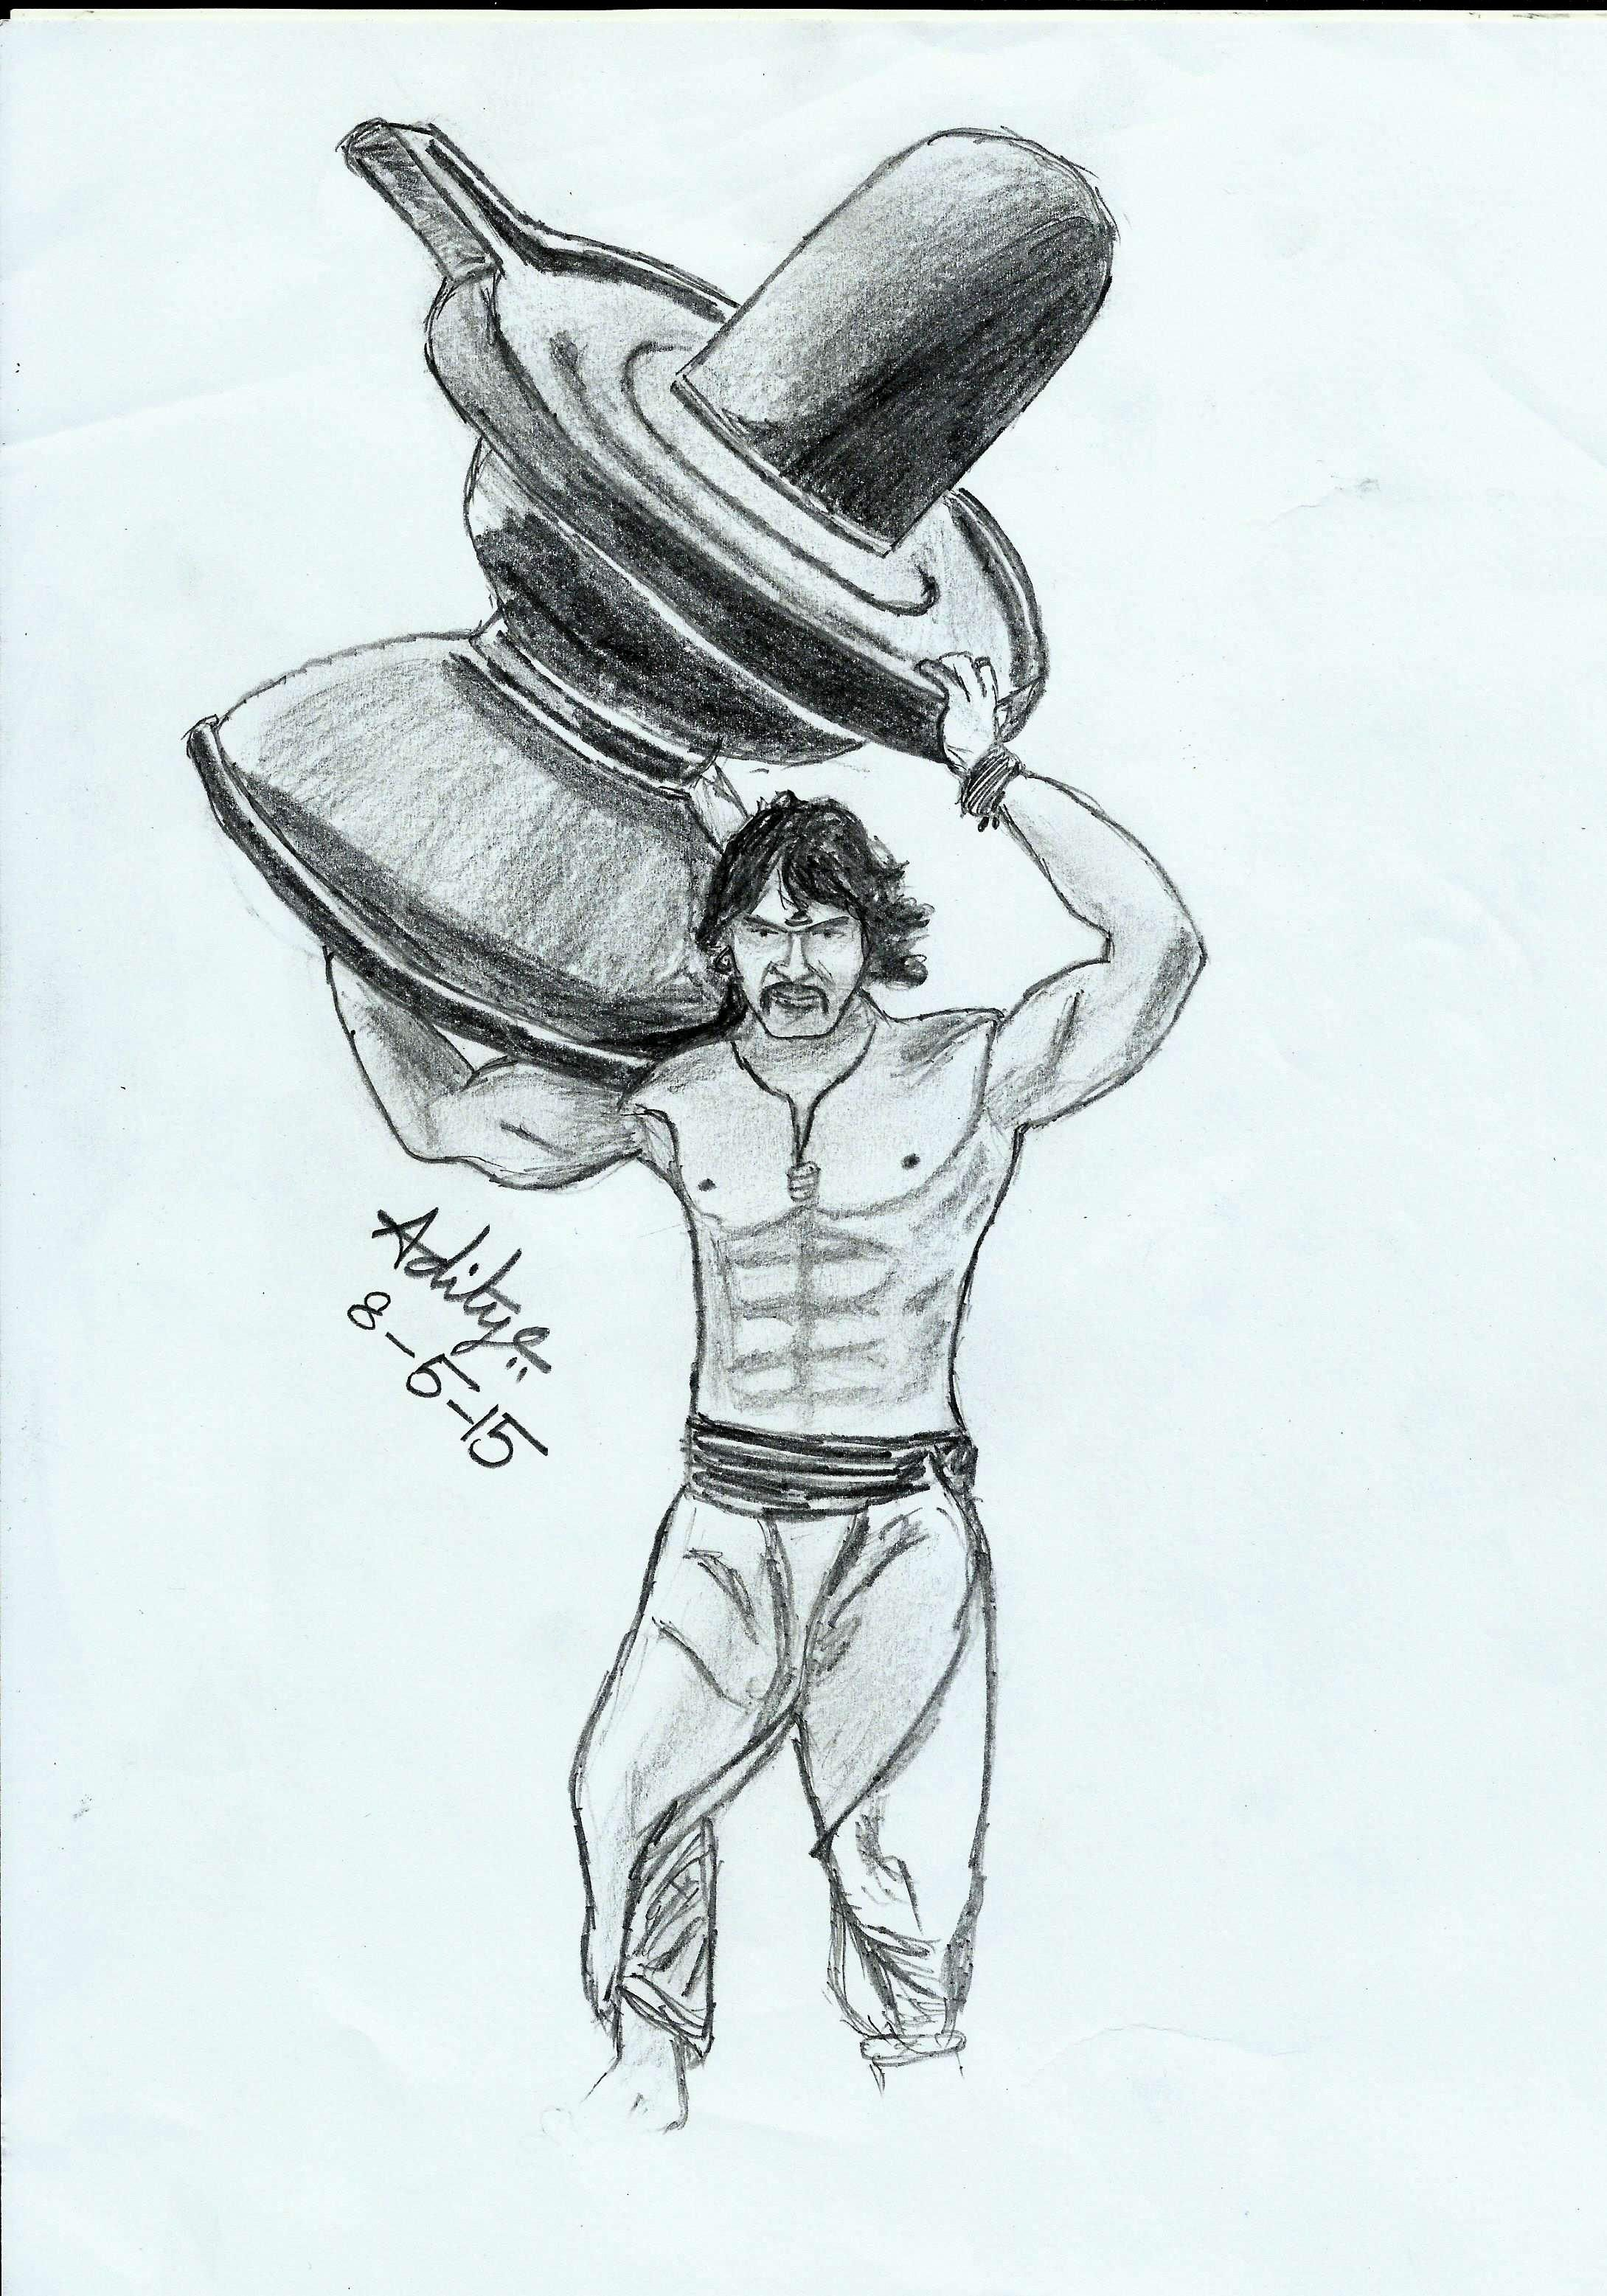 Baahubali pencil sketches pencil drawings art sketches drawings